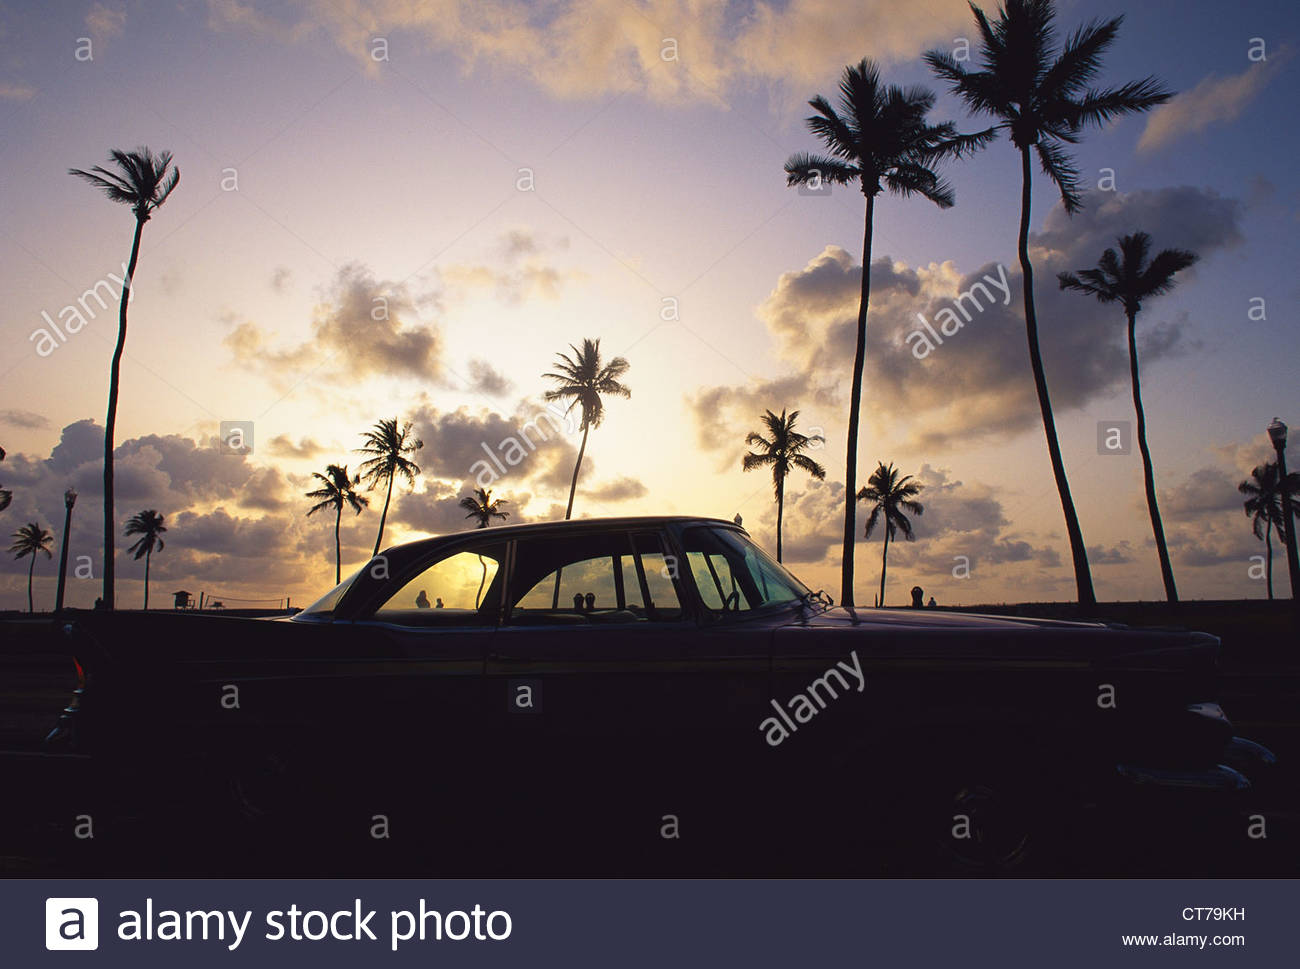 Classic American car under sunset and palm trees - Stock Image